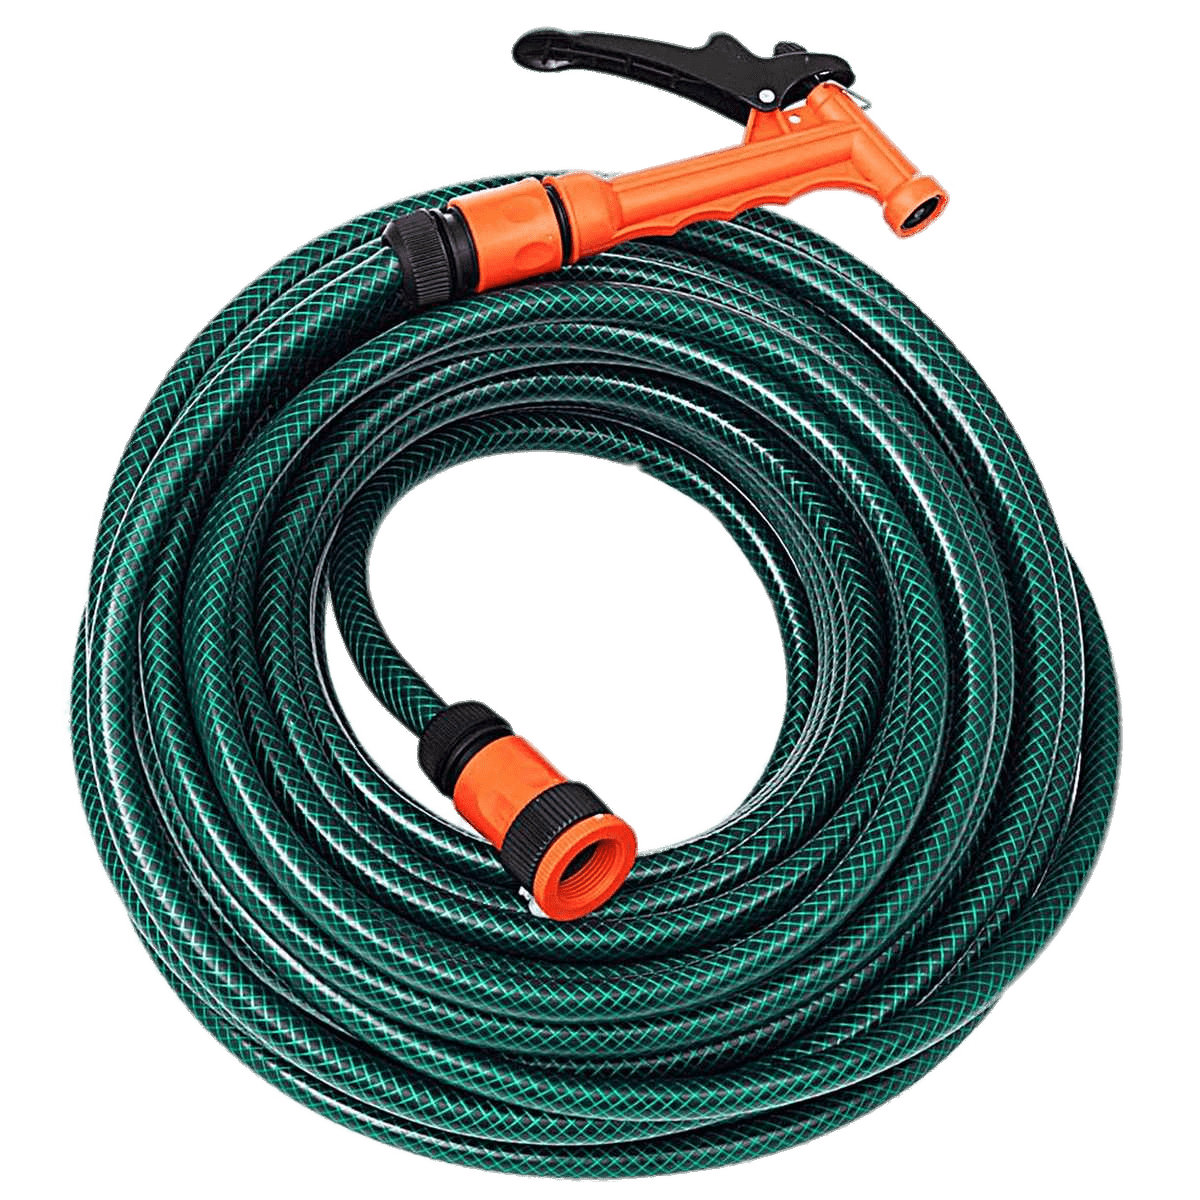 Garden Hose With Nozzle transparent PNG.